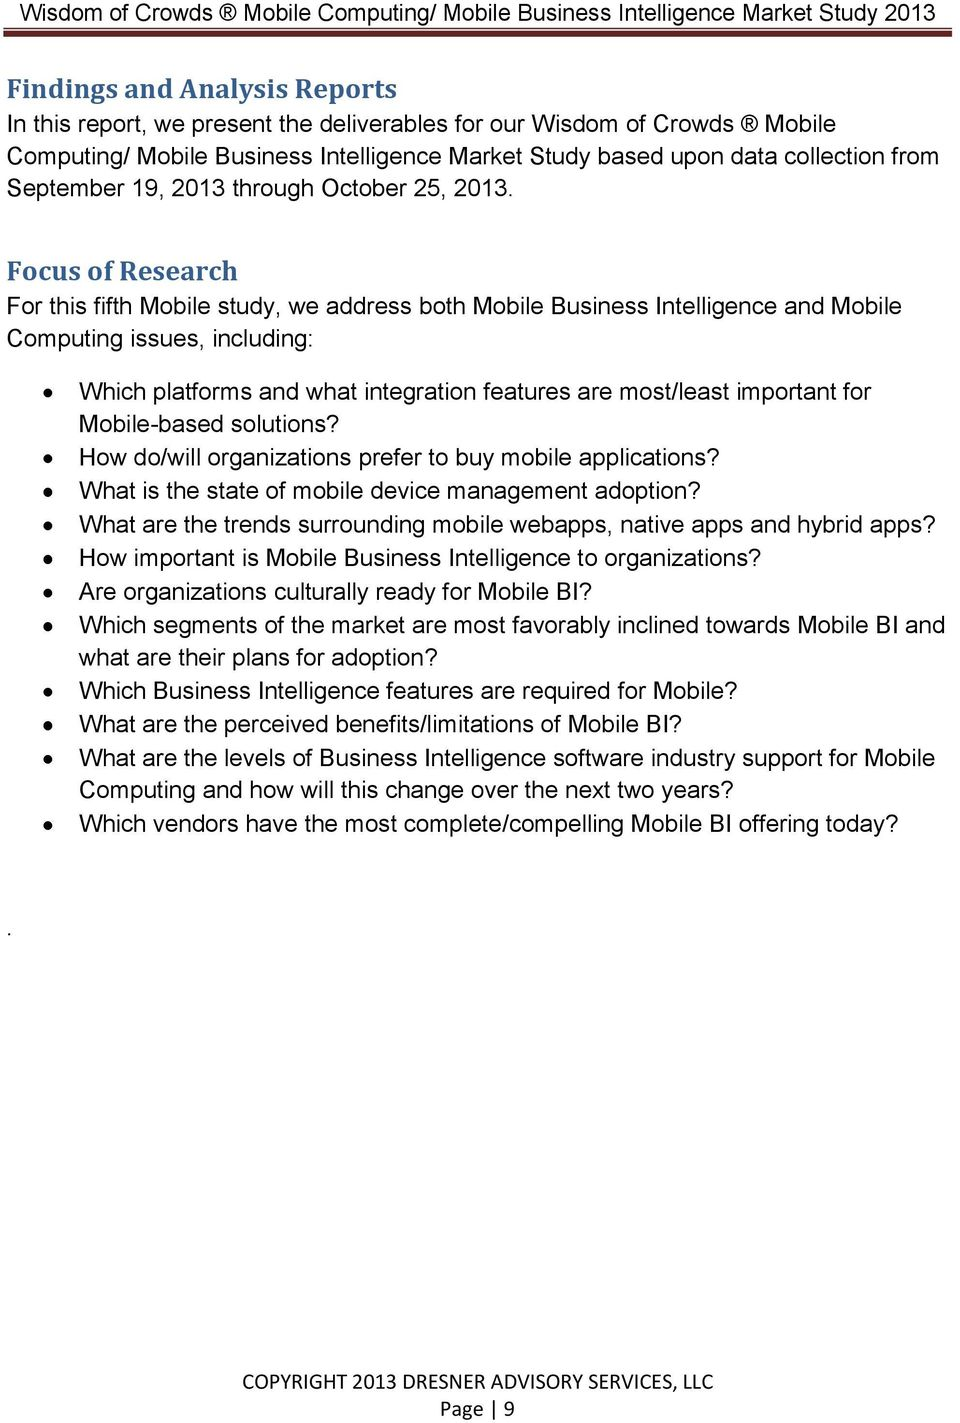 Focus of Research For this fifth Mobile study, we address both Mobile Business Intelligence and Mobile Computing issues, including: Which platforms and what integration features are most/least